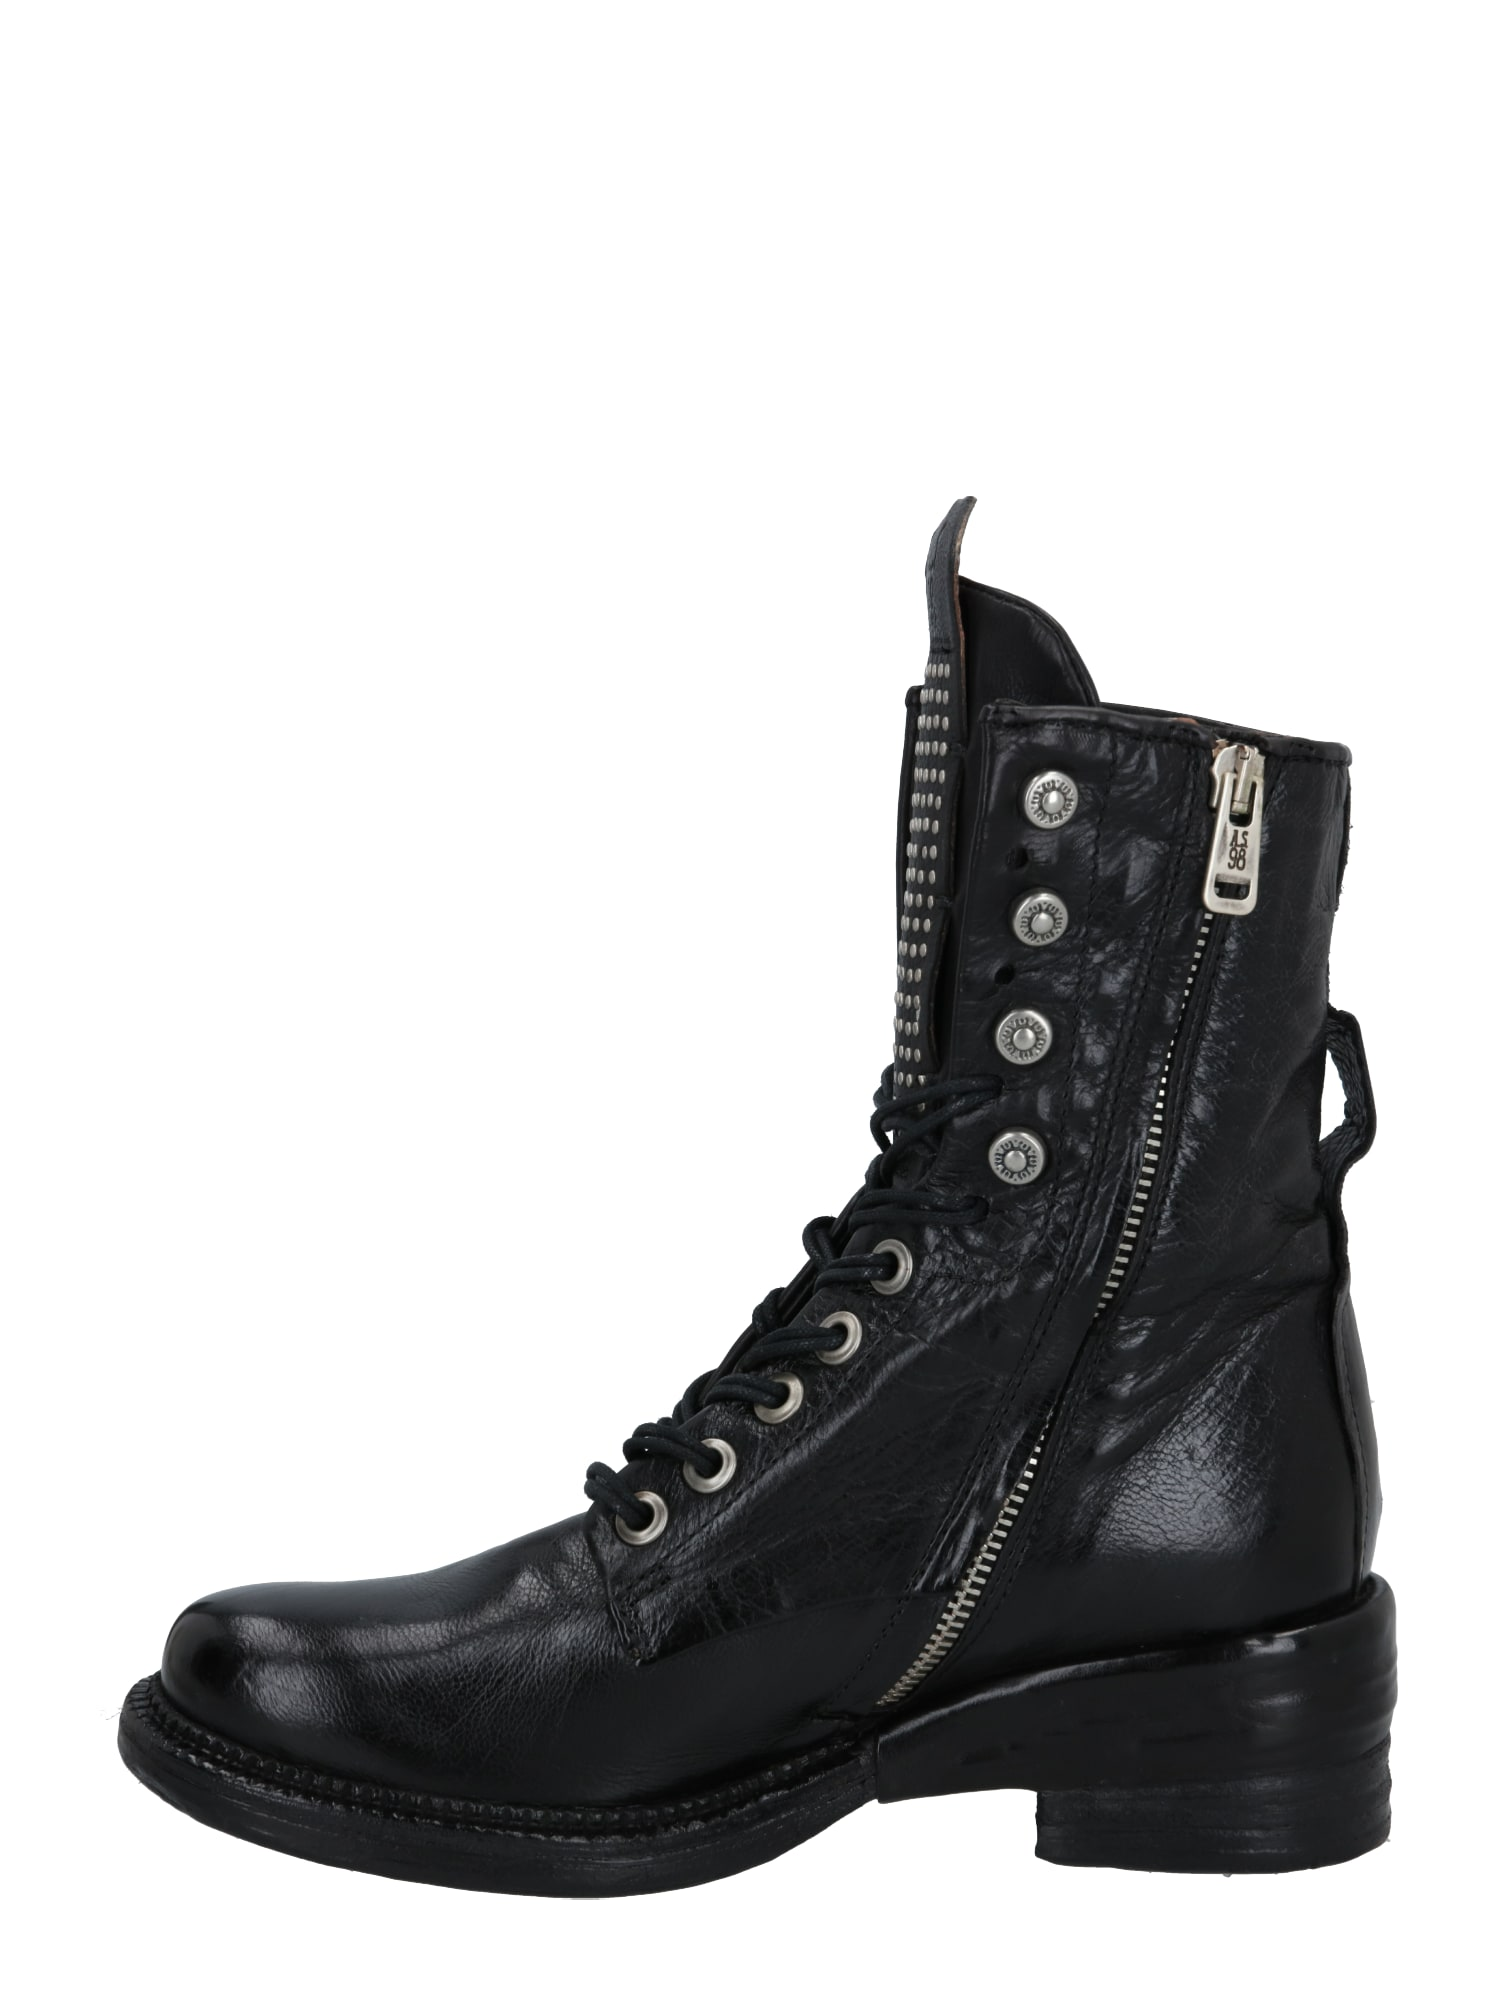 a.s.98 - Stiefel 'Miracle'